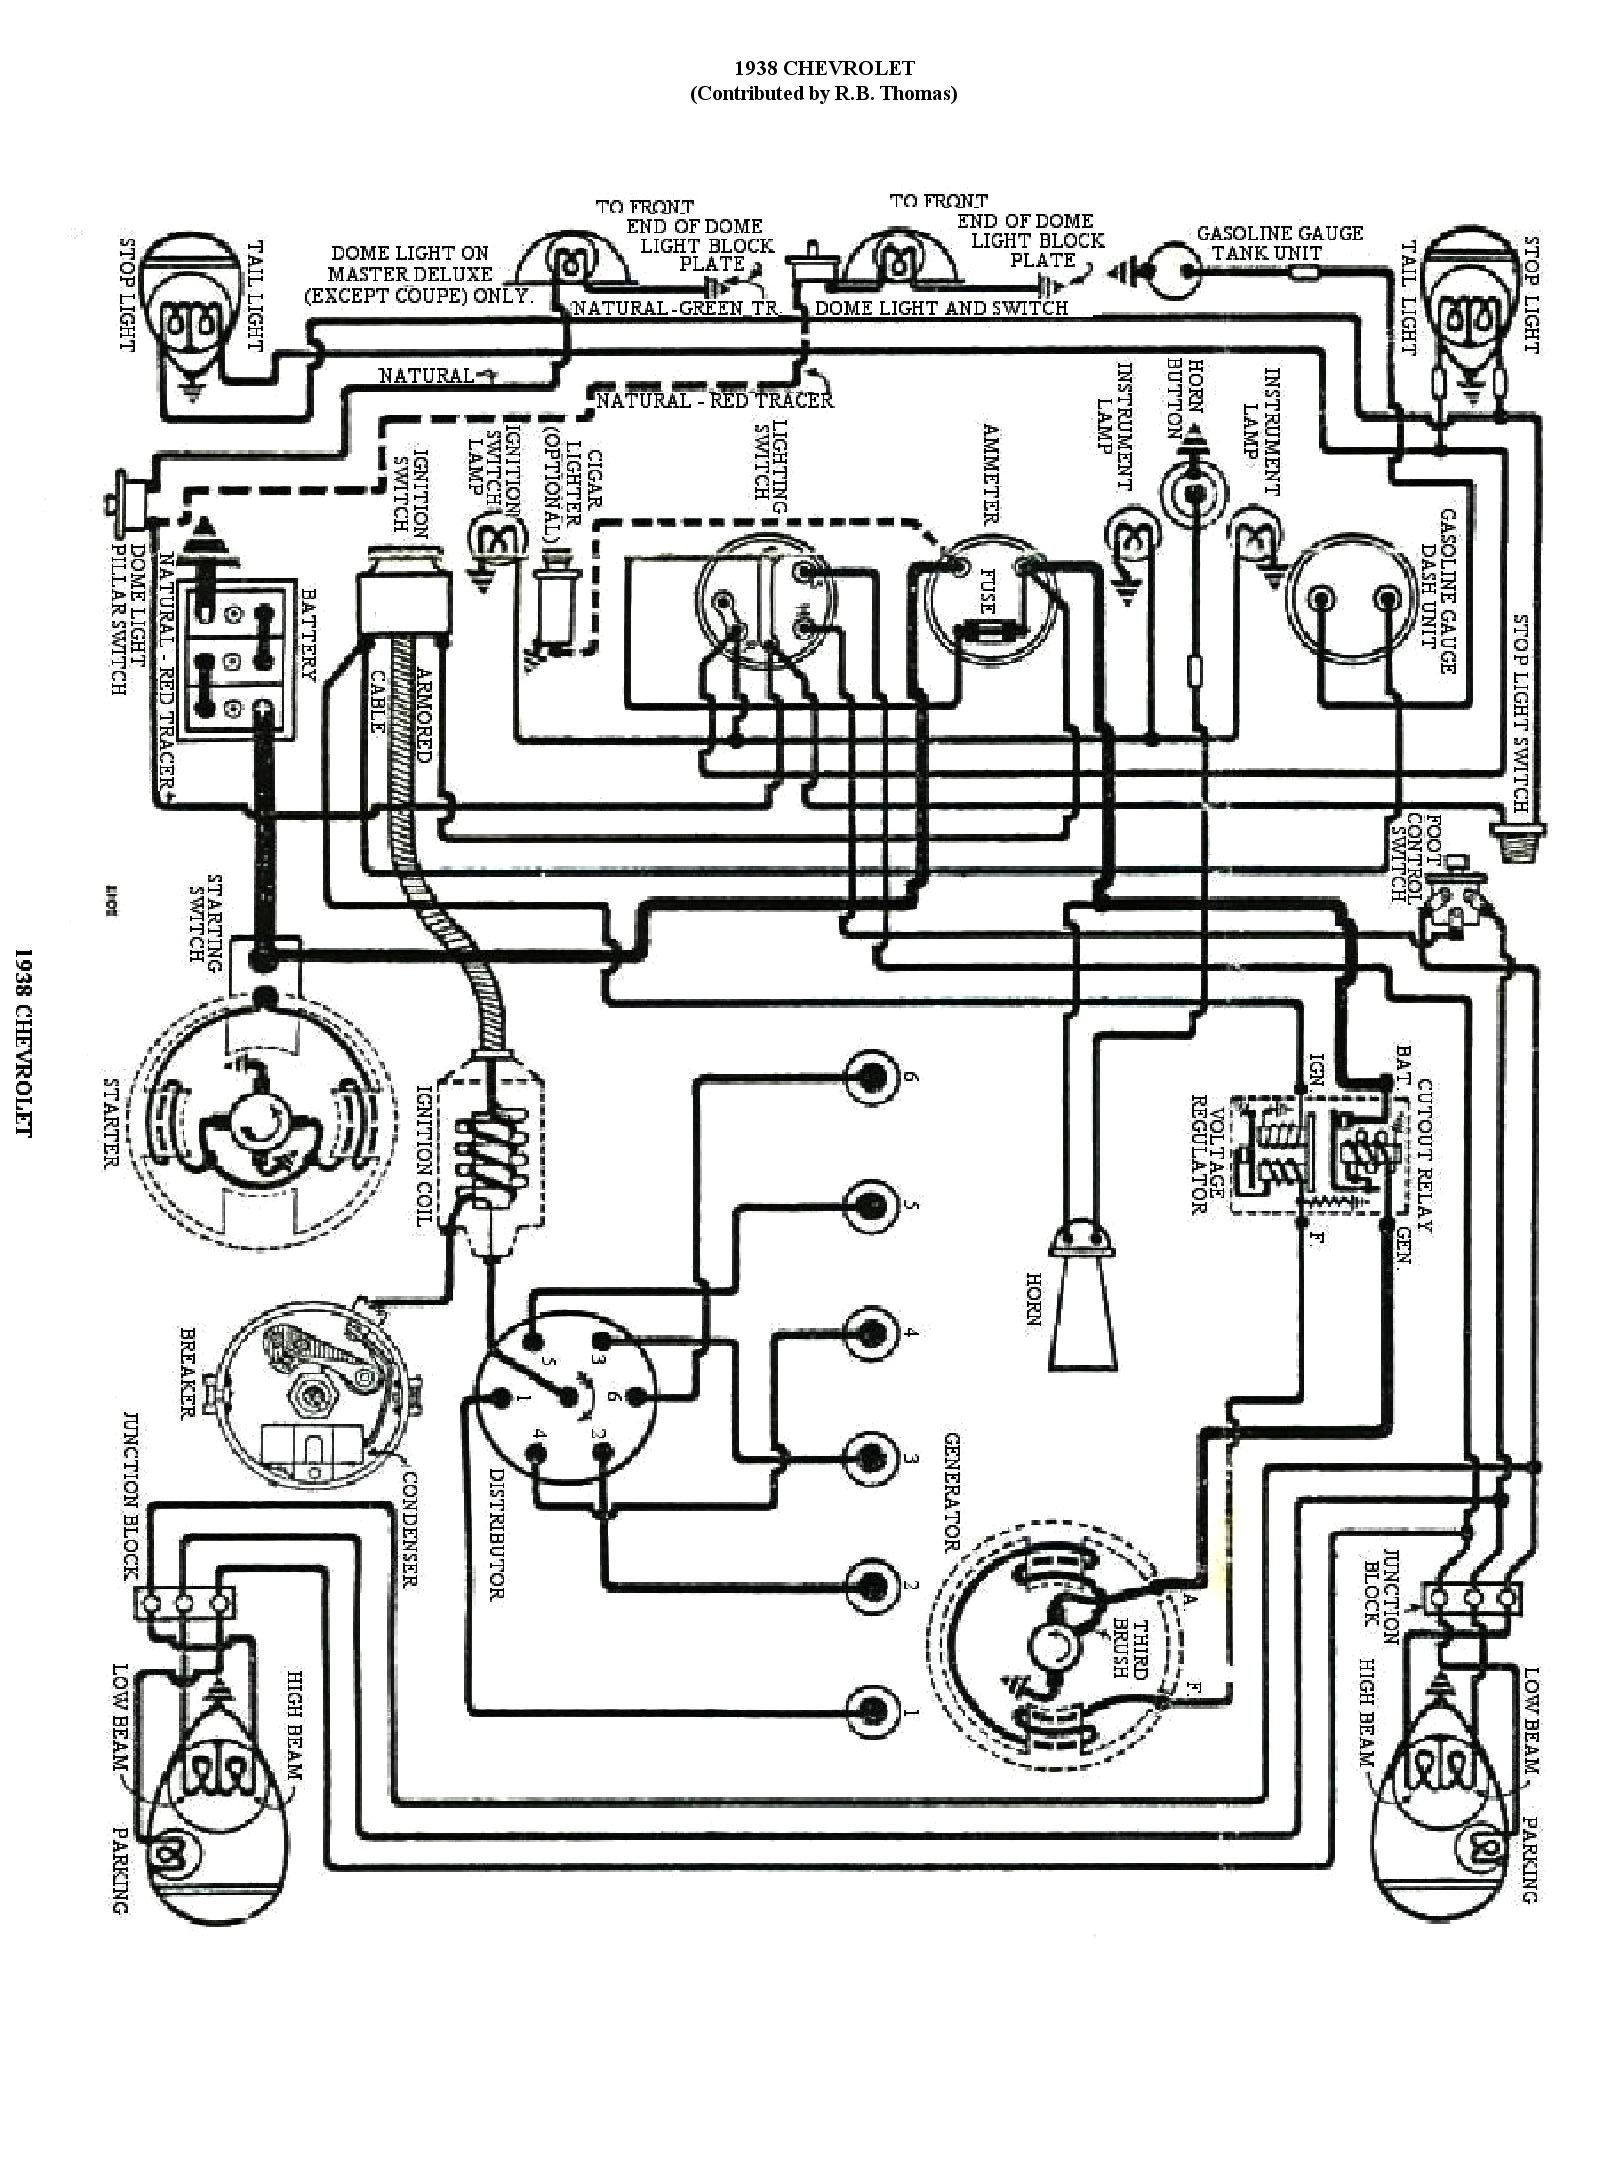 1937 Hudson Electrical Wiring Diagram - Wire Data Schema •